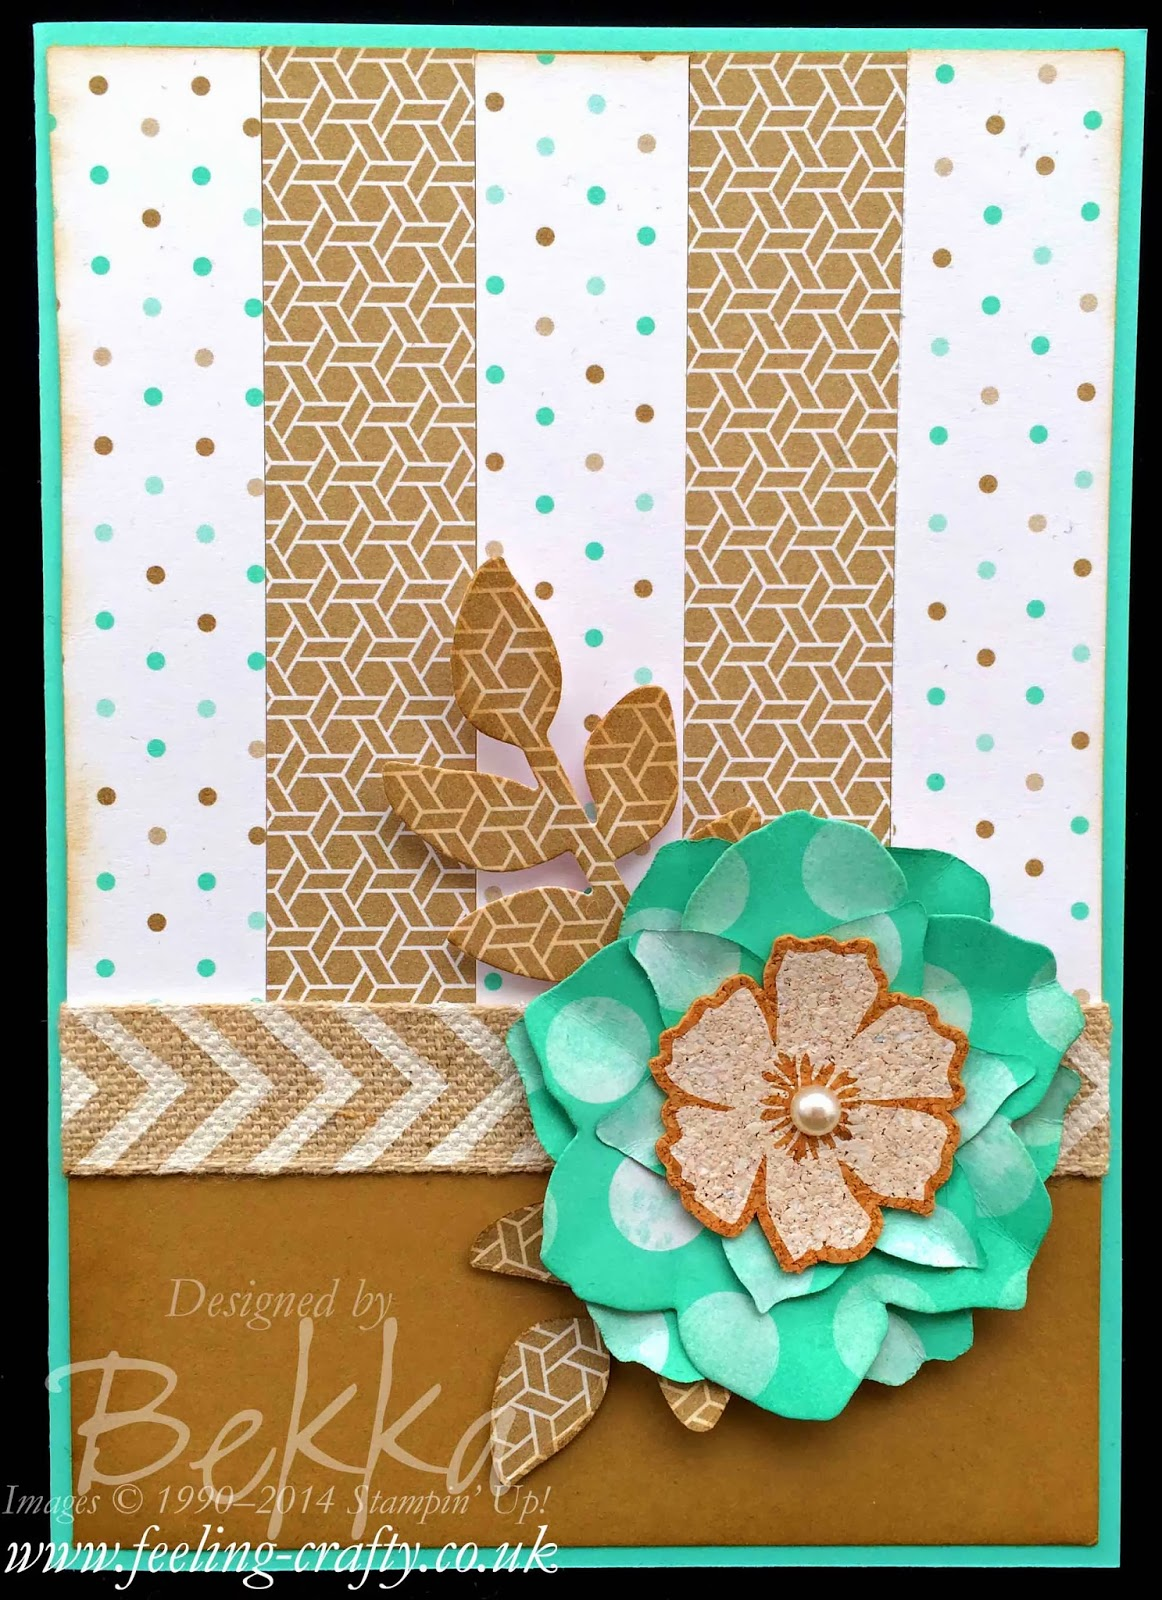 Fresh Prints Floral Card by UK based Stampin' Up! Demonstrator Bekka Prideaux - check out her blog for lots of great ideas!